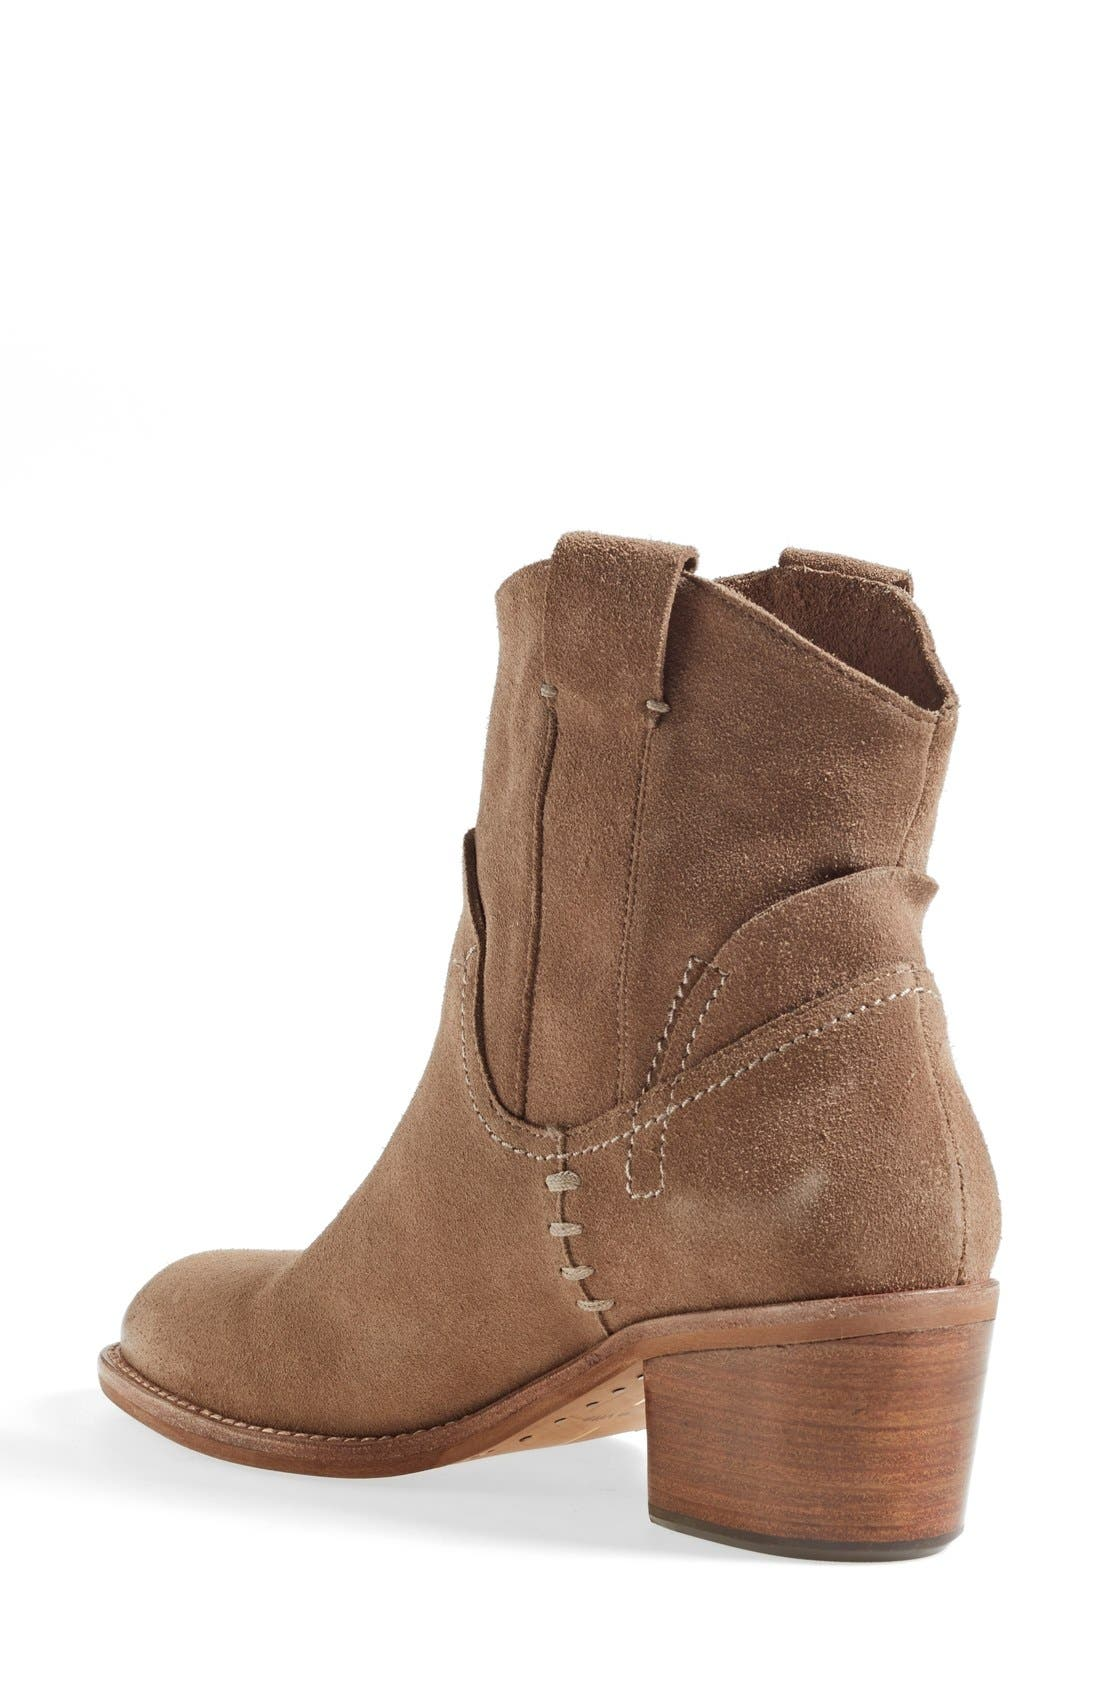 'Graham' Suede Bootie,                             Alternate thumbnail 2, color,                             Taupe Suede